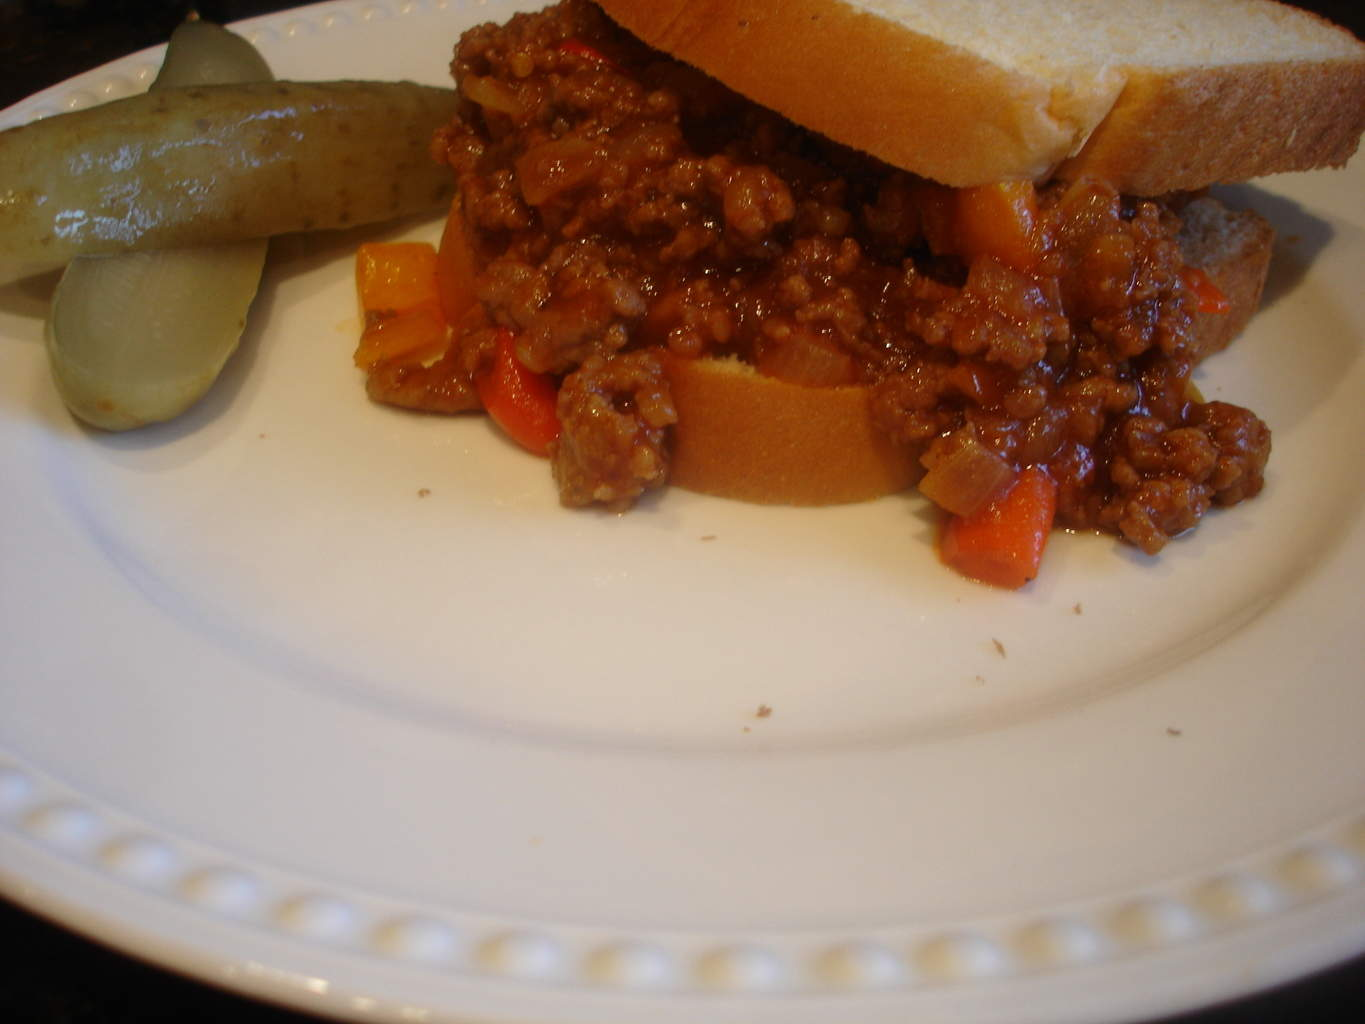 Sloppy Joe Redux (recipe: Two-Meat Sloppy Joes) | Syrup and Biscuits